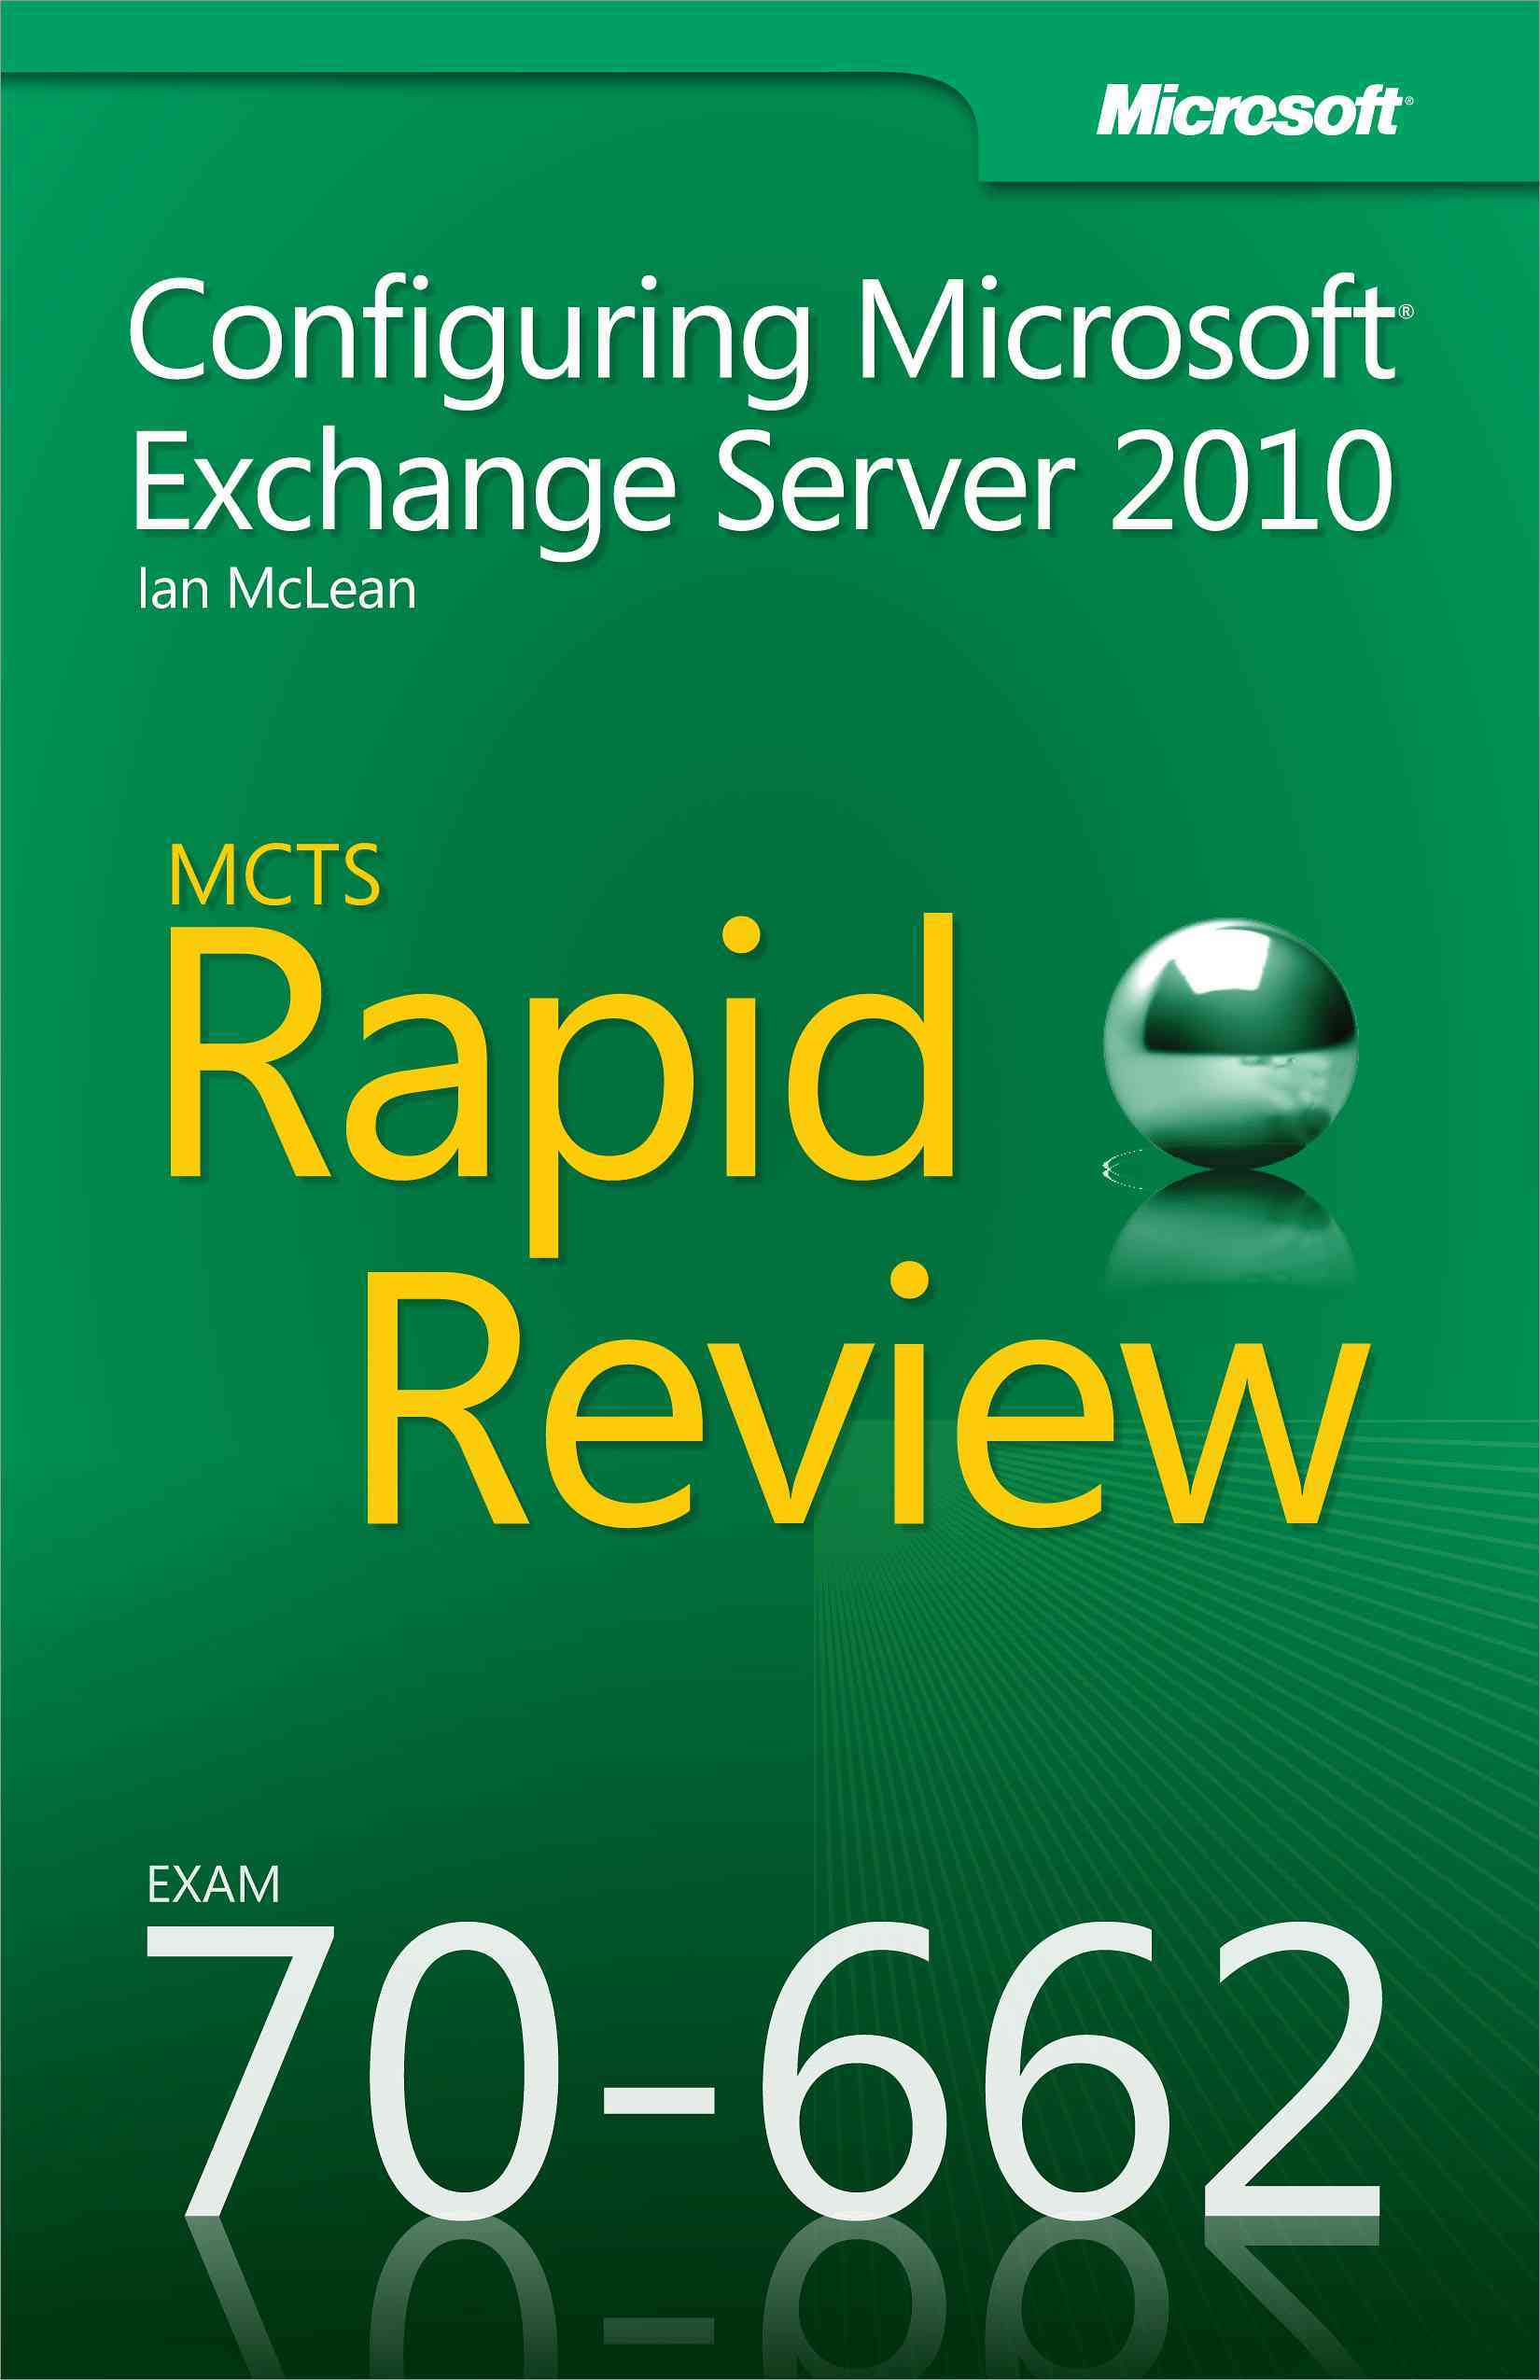 Mcts 70-662 Rapid Review: Configuring Microsoft Exchange Server 2010 (Paperback)